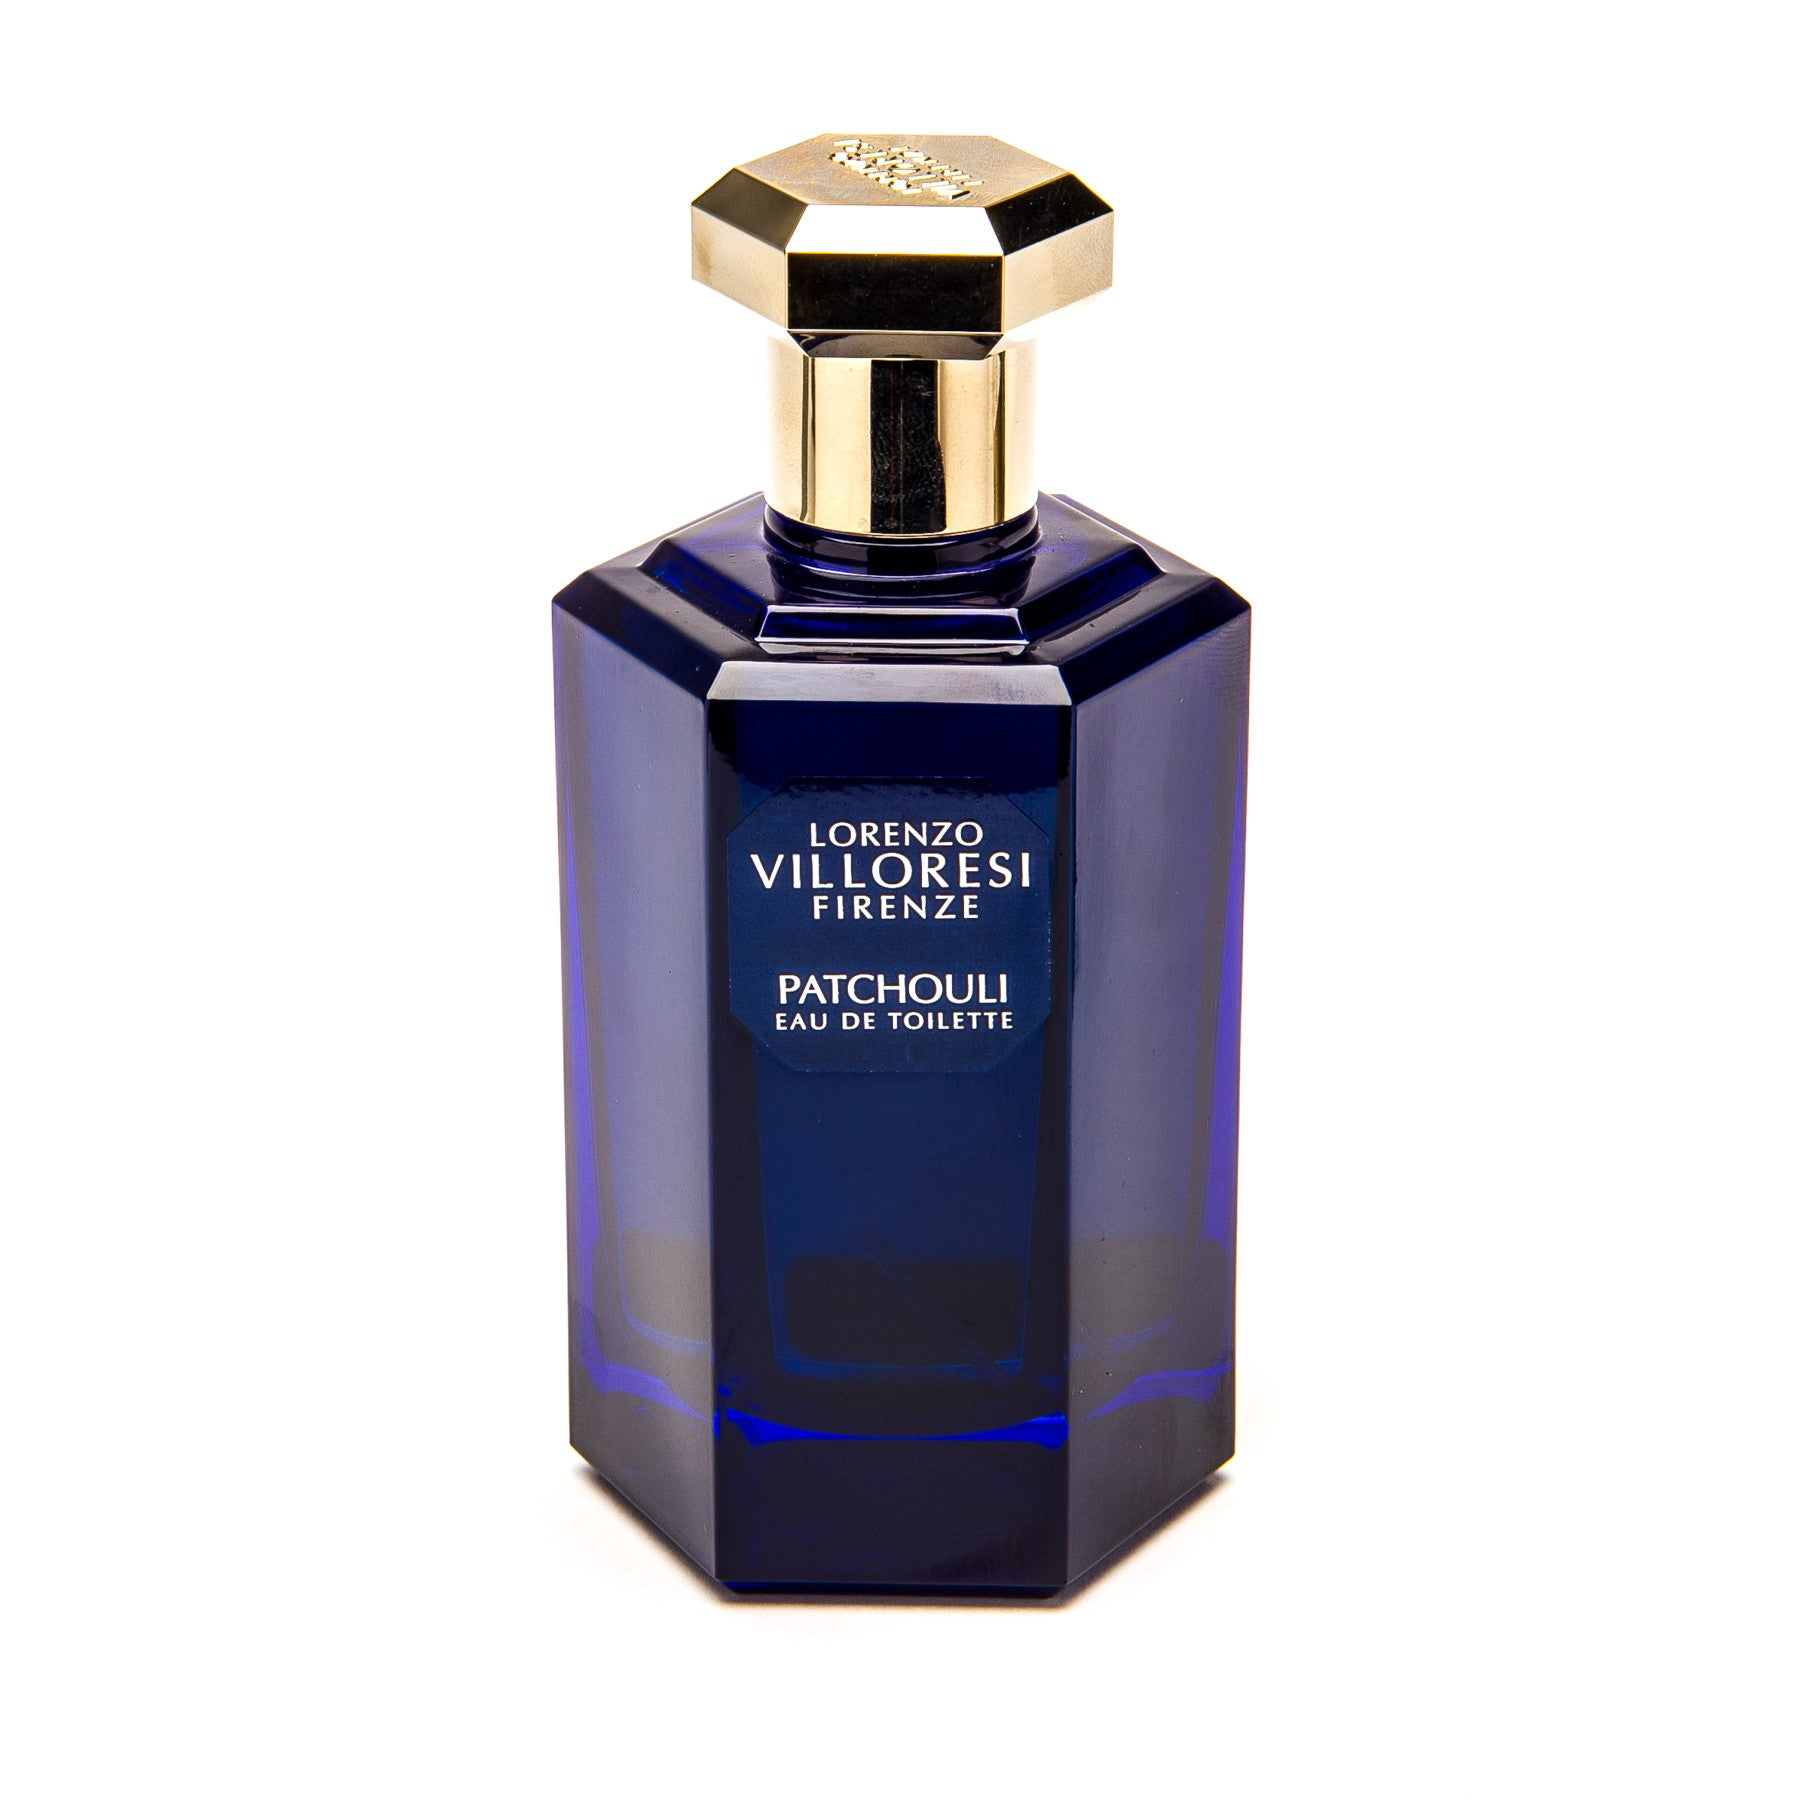 Lorenzo Villores Fragrance: Patchouli - Peter Nappi